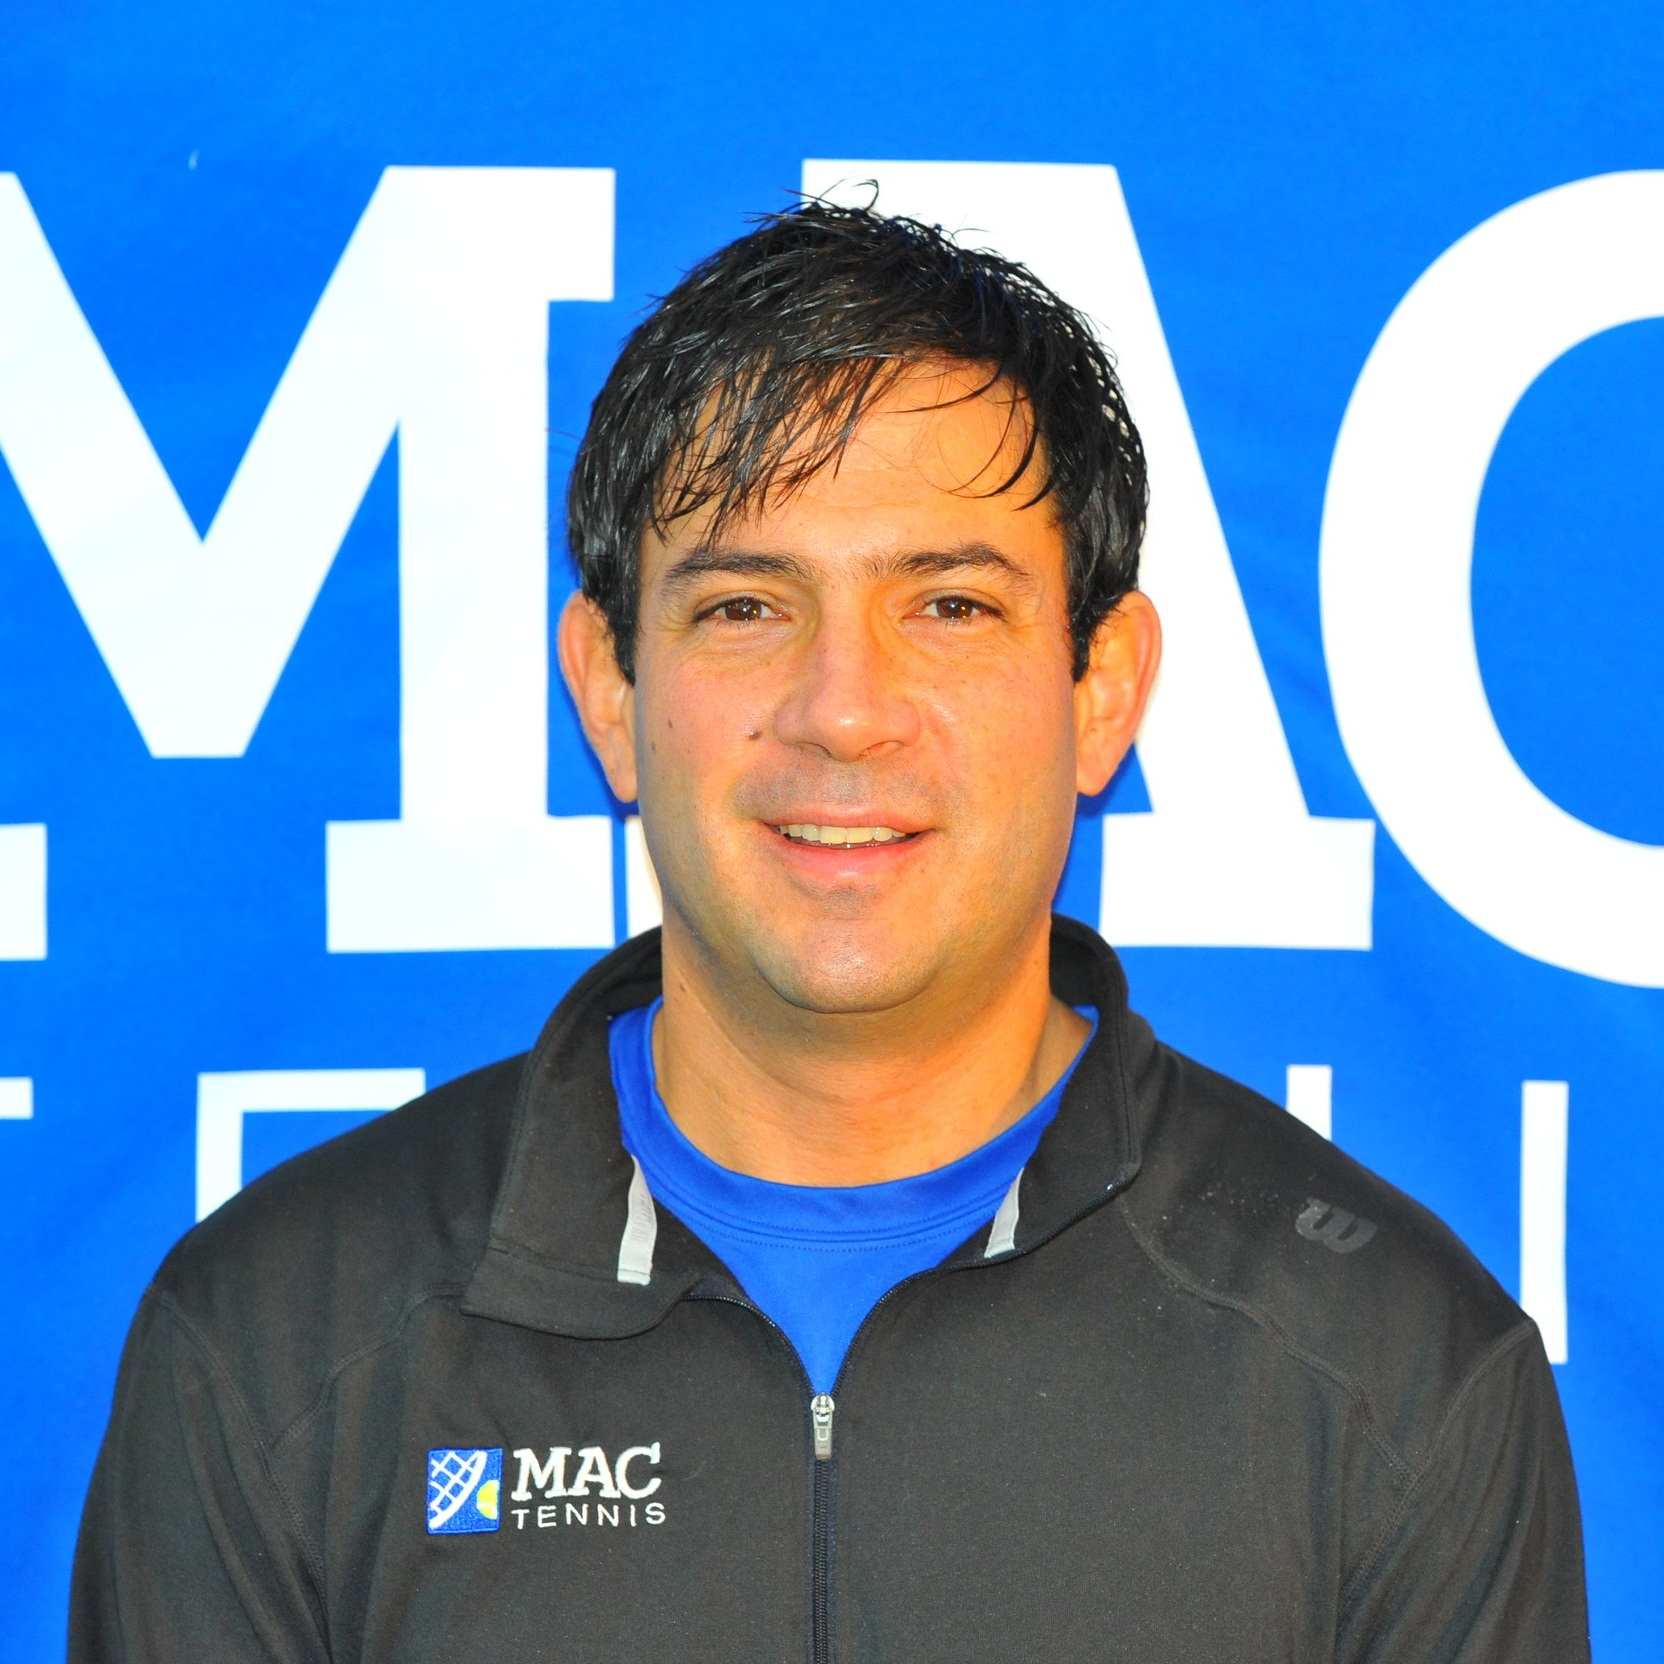 "Francisco Montoya -   Director of MAC Tennis Academy   Francisco been in the coaching side of the game for the past twenty five years. He spent ten years at the Nick Bollettieri Tennis Academy in Florida where he went from hitting partner to travelling coach to head coach to the leader of organizing the international tournament schedule for all the top players in the program. During his ten years at NBTA he worked directly with elite players such as Venus and Serena Williams, Maria Sharapova, Tommy Haas, Horia Tecau, Mirjana Lucic, Paul Henry Mathiew, Dustin Brown and many others.  Francisco started the MAC Tennis Academy with in partnership with Nick Bollettieri in 2003, and the program has develop a reputation of excellence in New England and the entire US. During his years in New England, he has receipt multiple awards that include ""coach of the year"", ""pro of the year"" and the William Freedman award by the USPTA and the USTA. The MAC Tennis Academy has helped over 150 players reach their goal of playing college tennis in the US, and some of those players have gone to compete in the professional circuit. Francisco's belief is to maintain a full commitment to a program that values teamwork and a family oriented feeling for all coaches, players and parents.    fmontoya@macathletics.com"